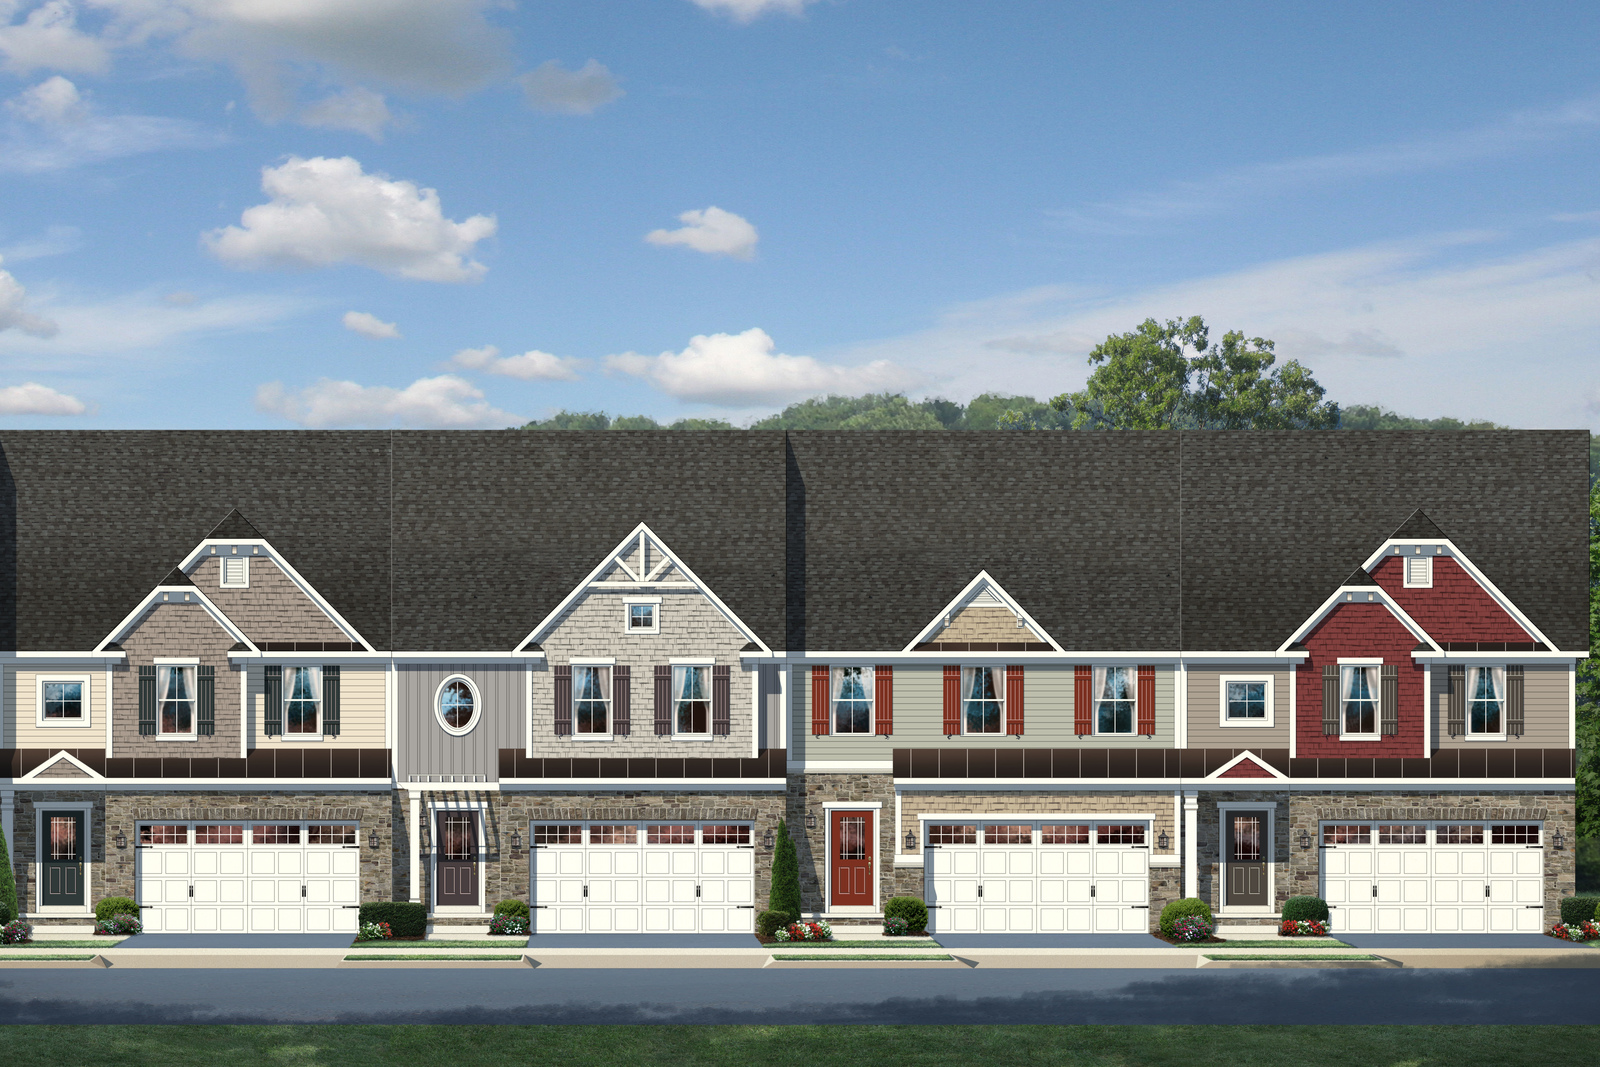 New griffin hall home model for sale heartland homes for Heartland homes pittsburgh floor plans